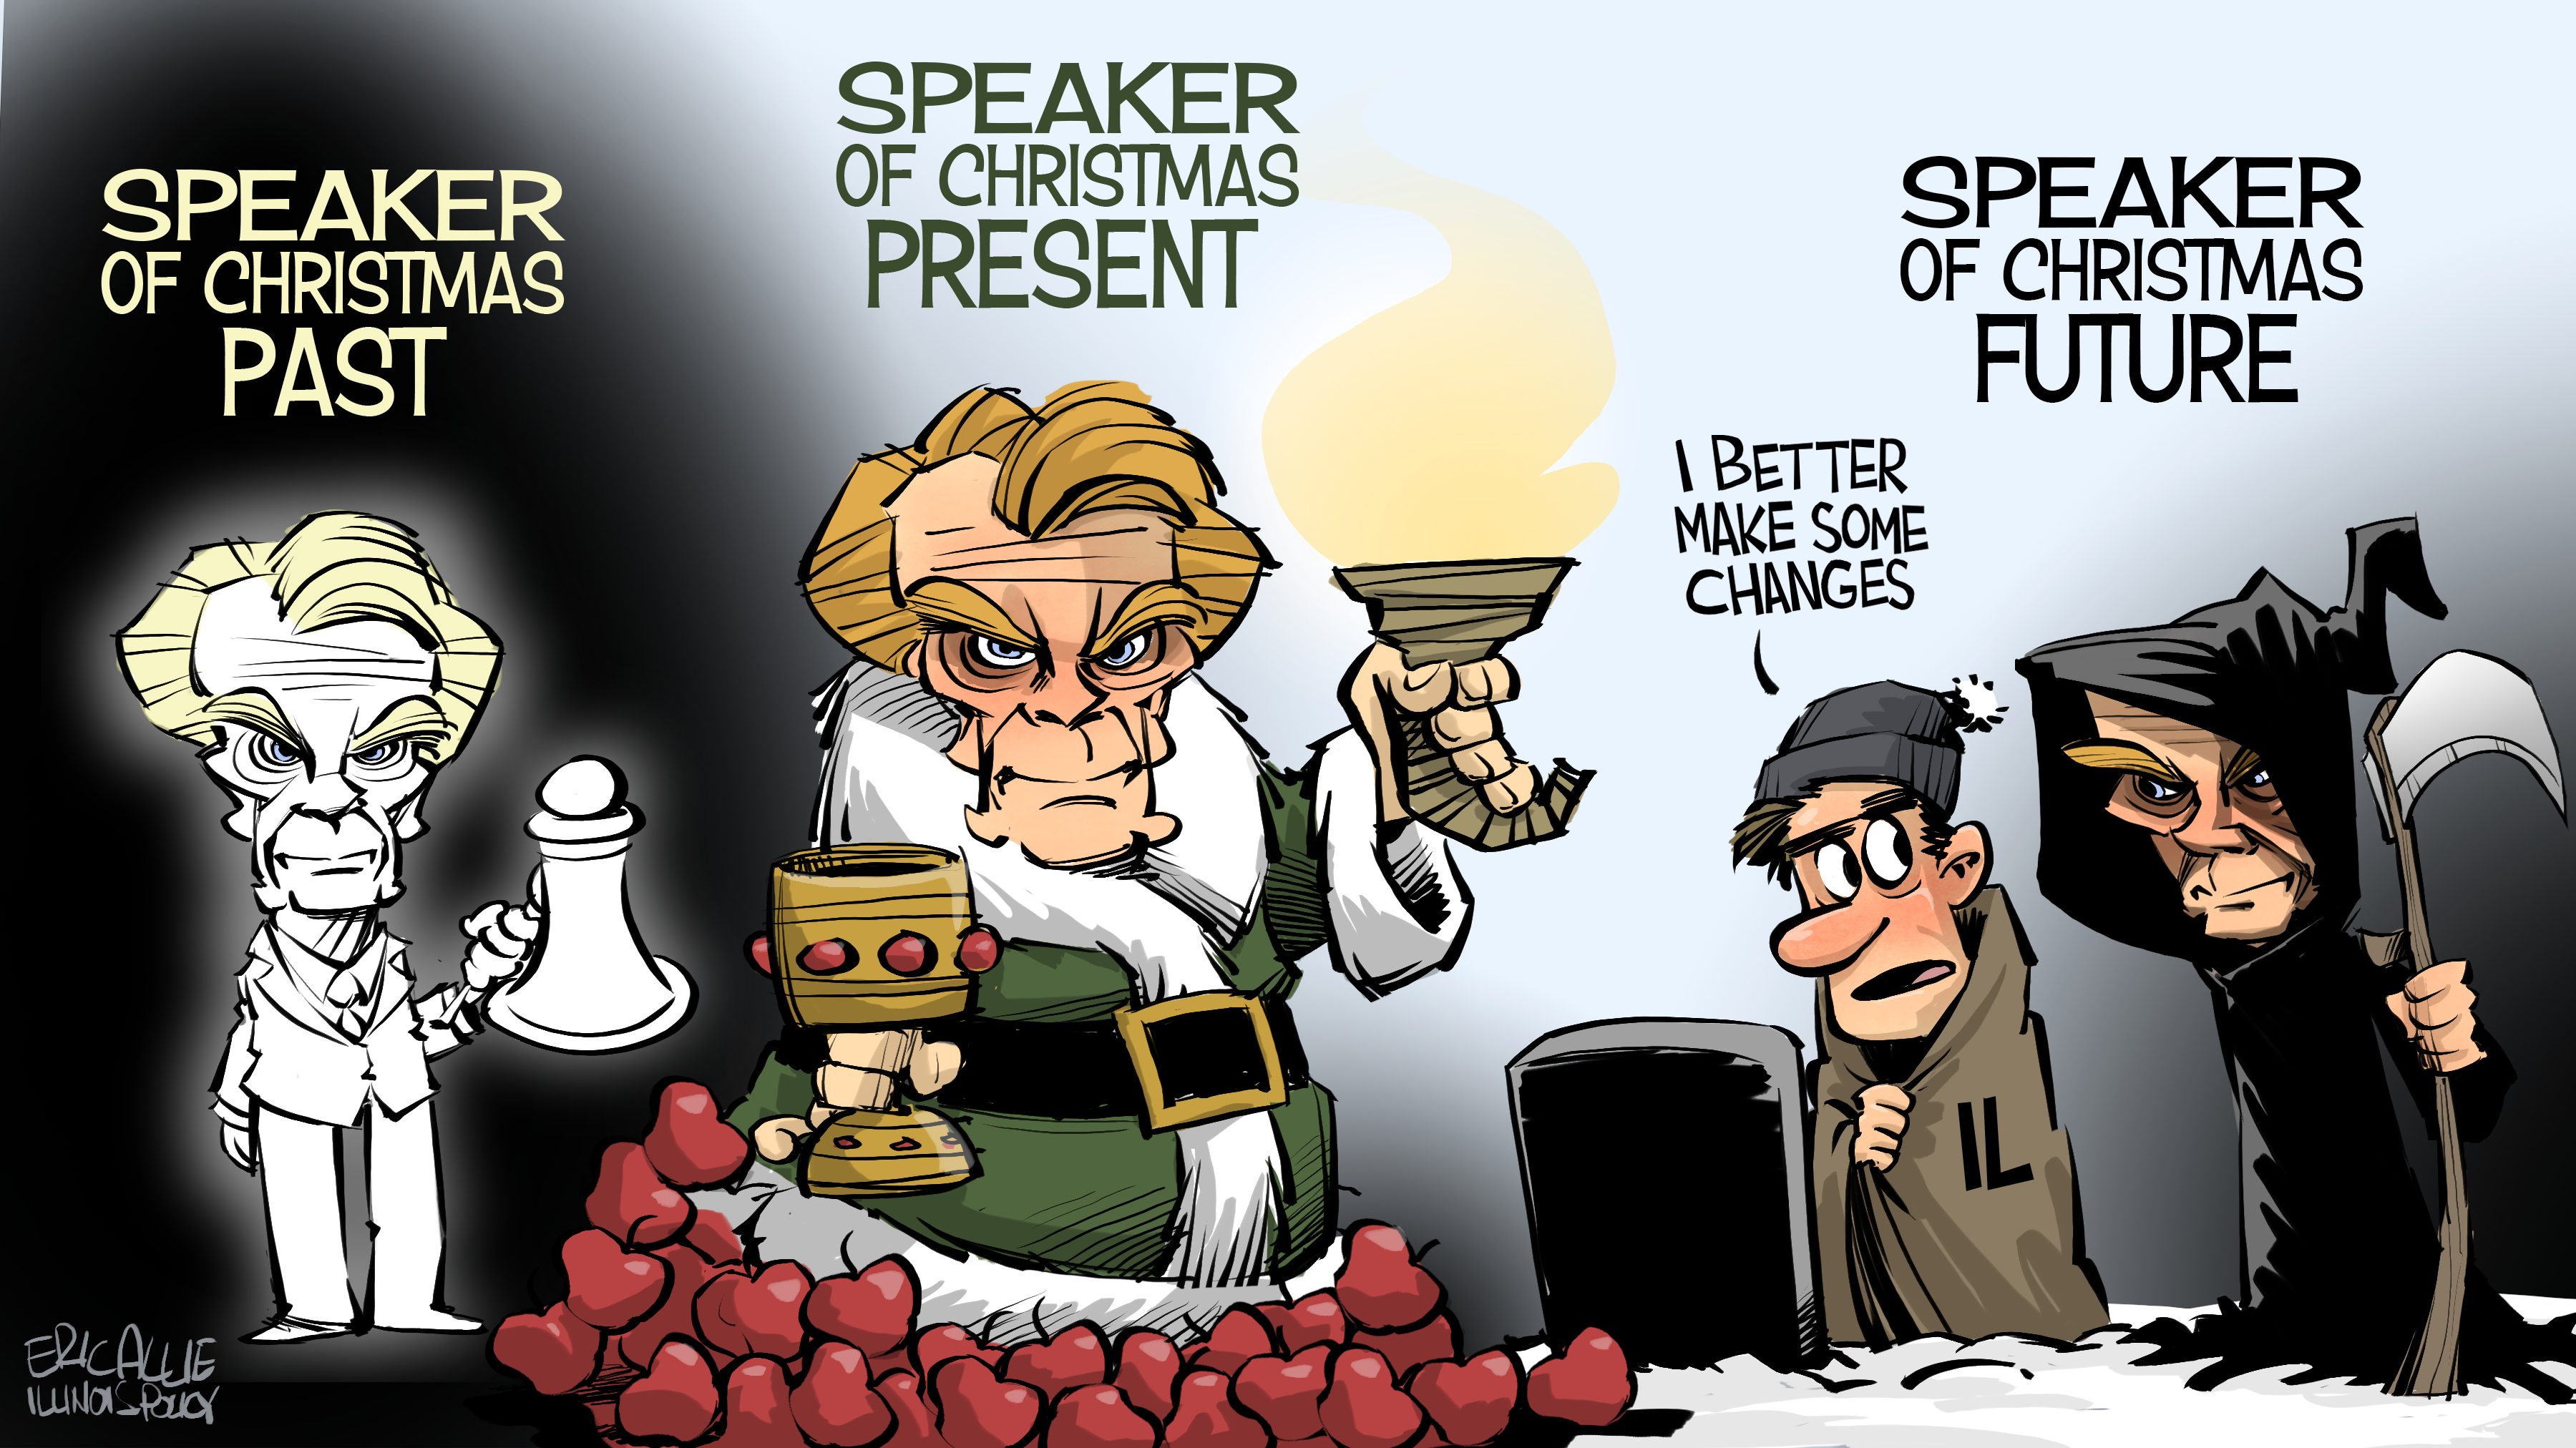 Speaker of Christmas Future